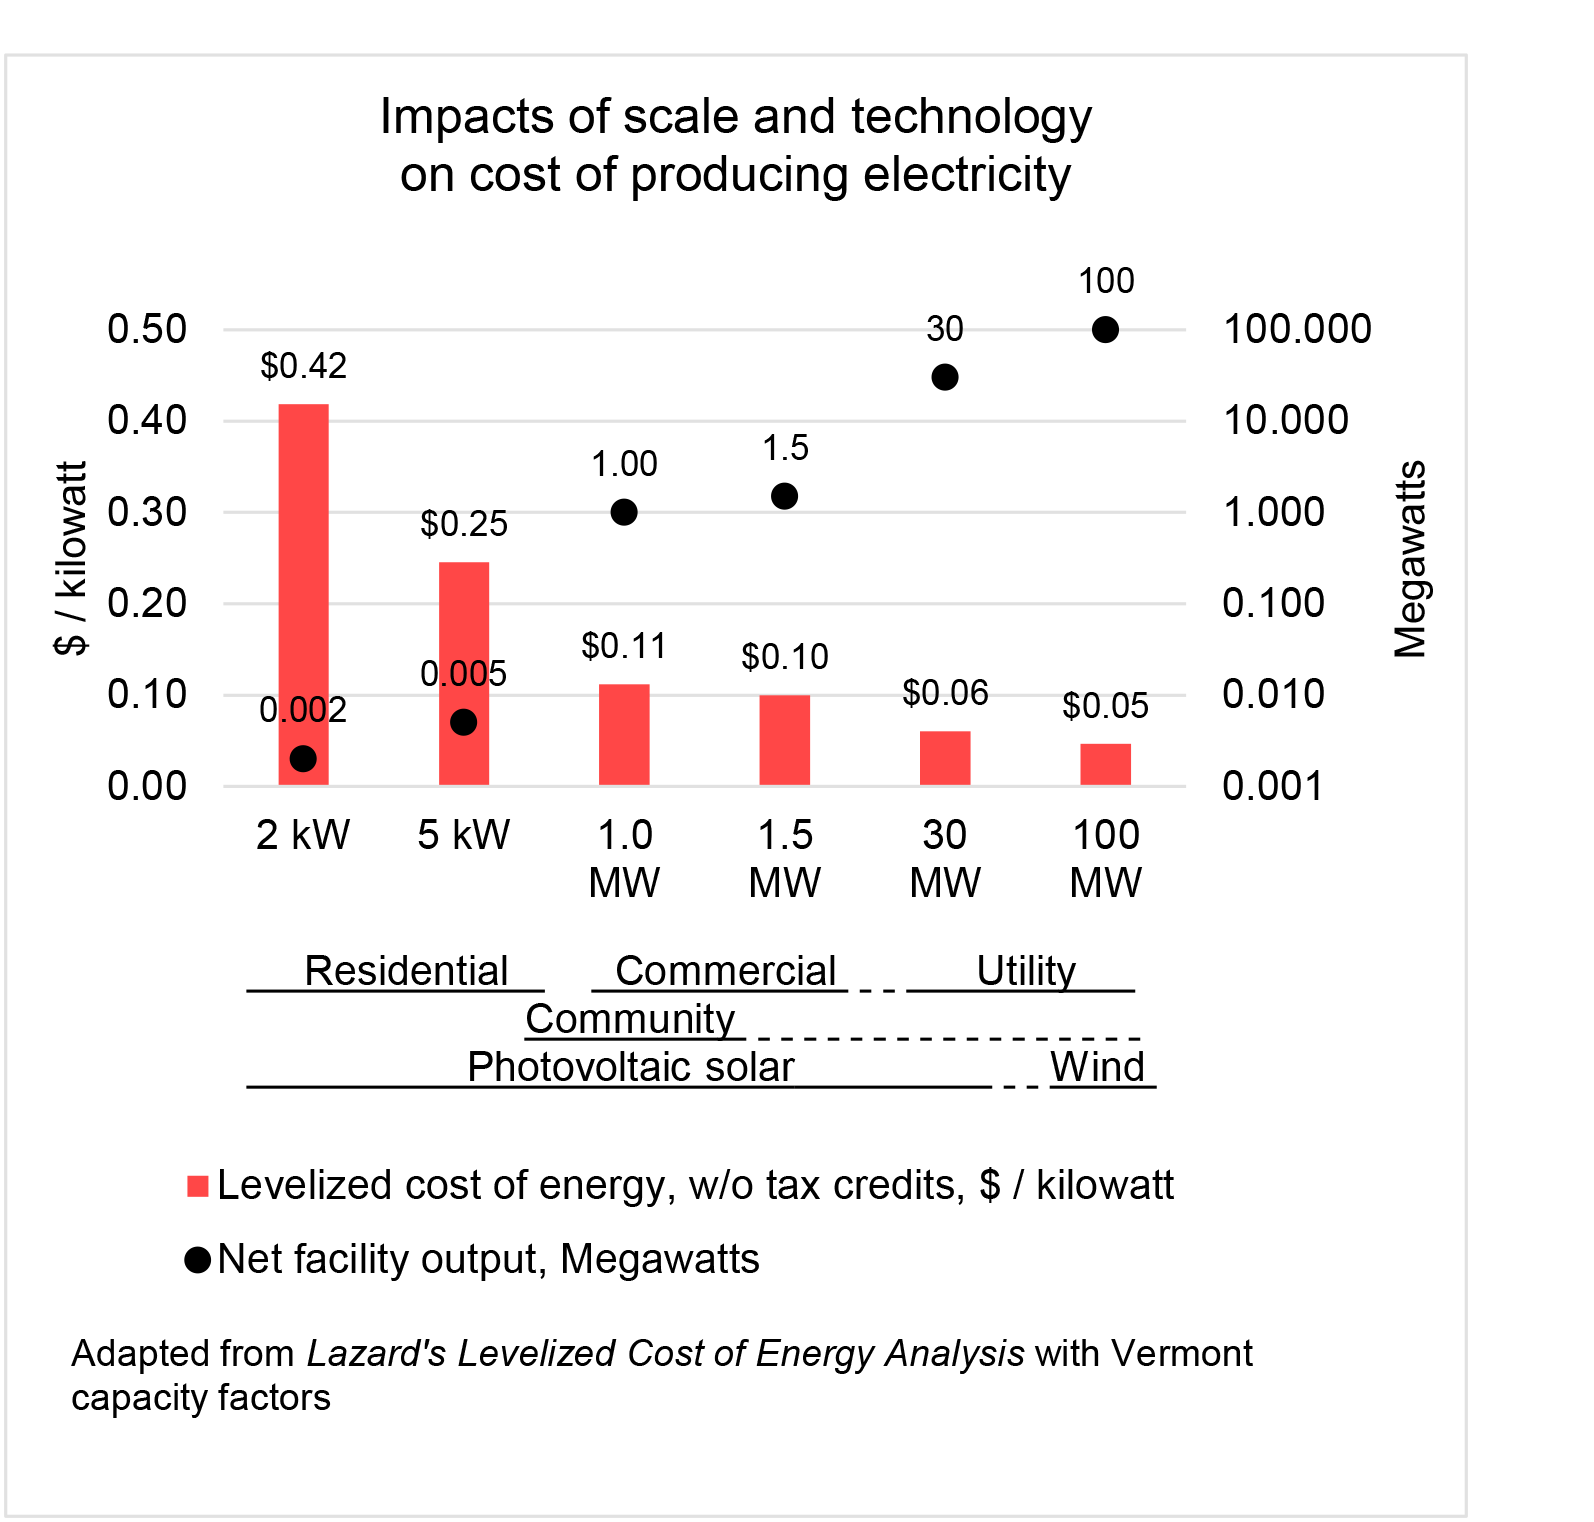 Economies of scale in producing electricity are substantial. Cost per kilowatt hour goes down as the size of the generating system goes up. The cost with a 2-kW photovoltaic array in Vermont, 42 cents, is seven times larger than the 6-cent cost with a 30-MW, utility-scale array.